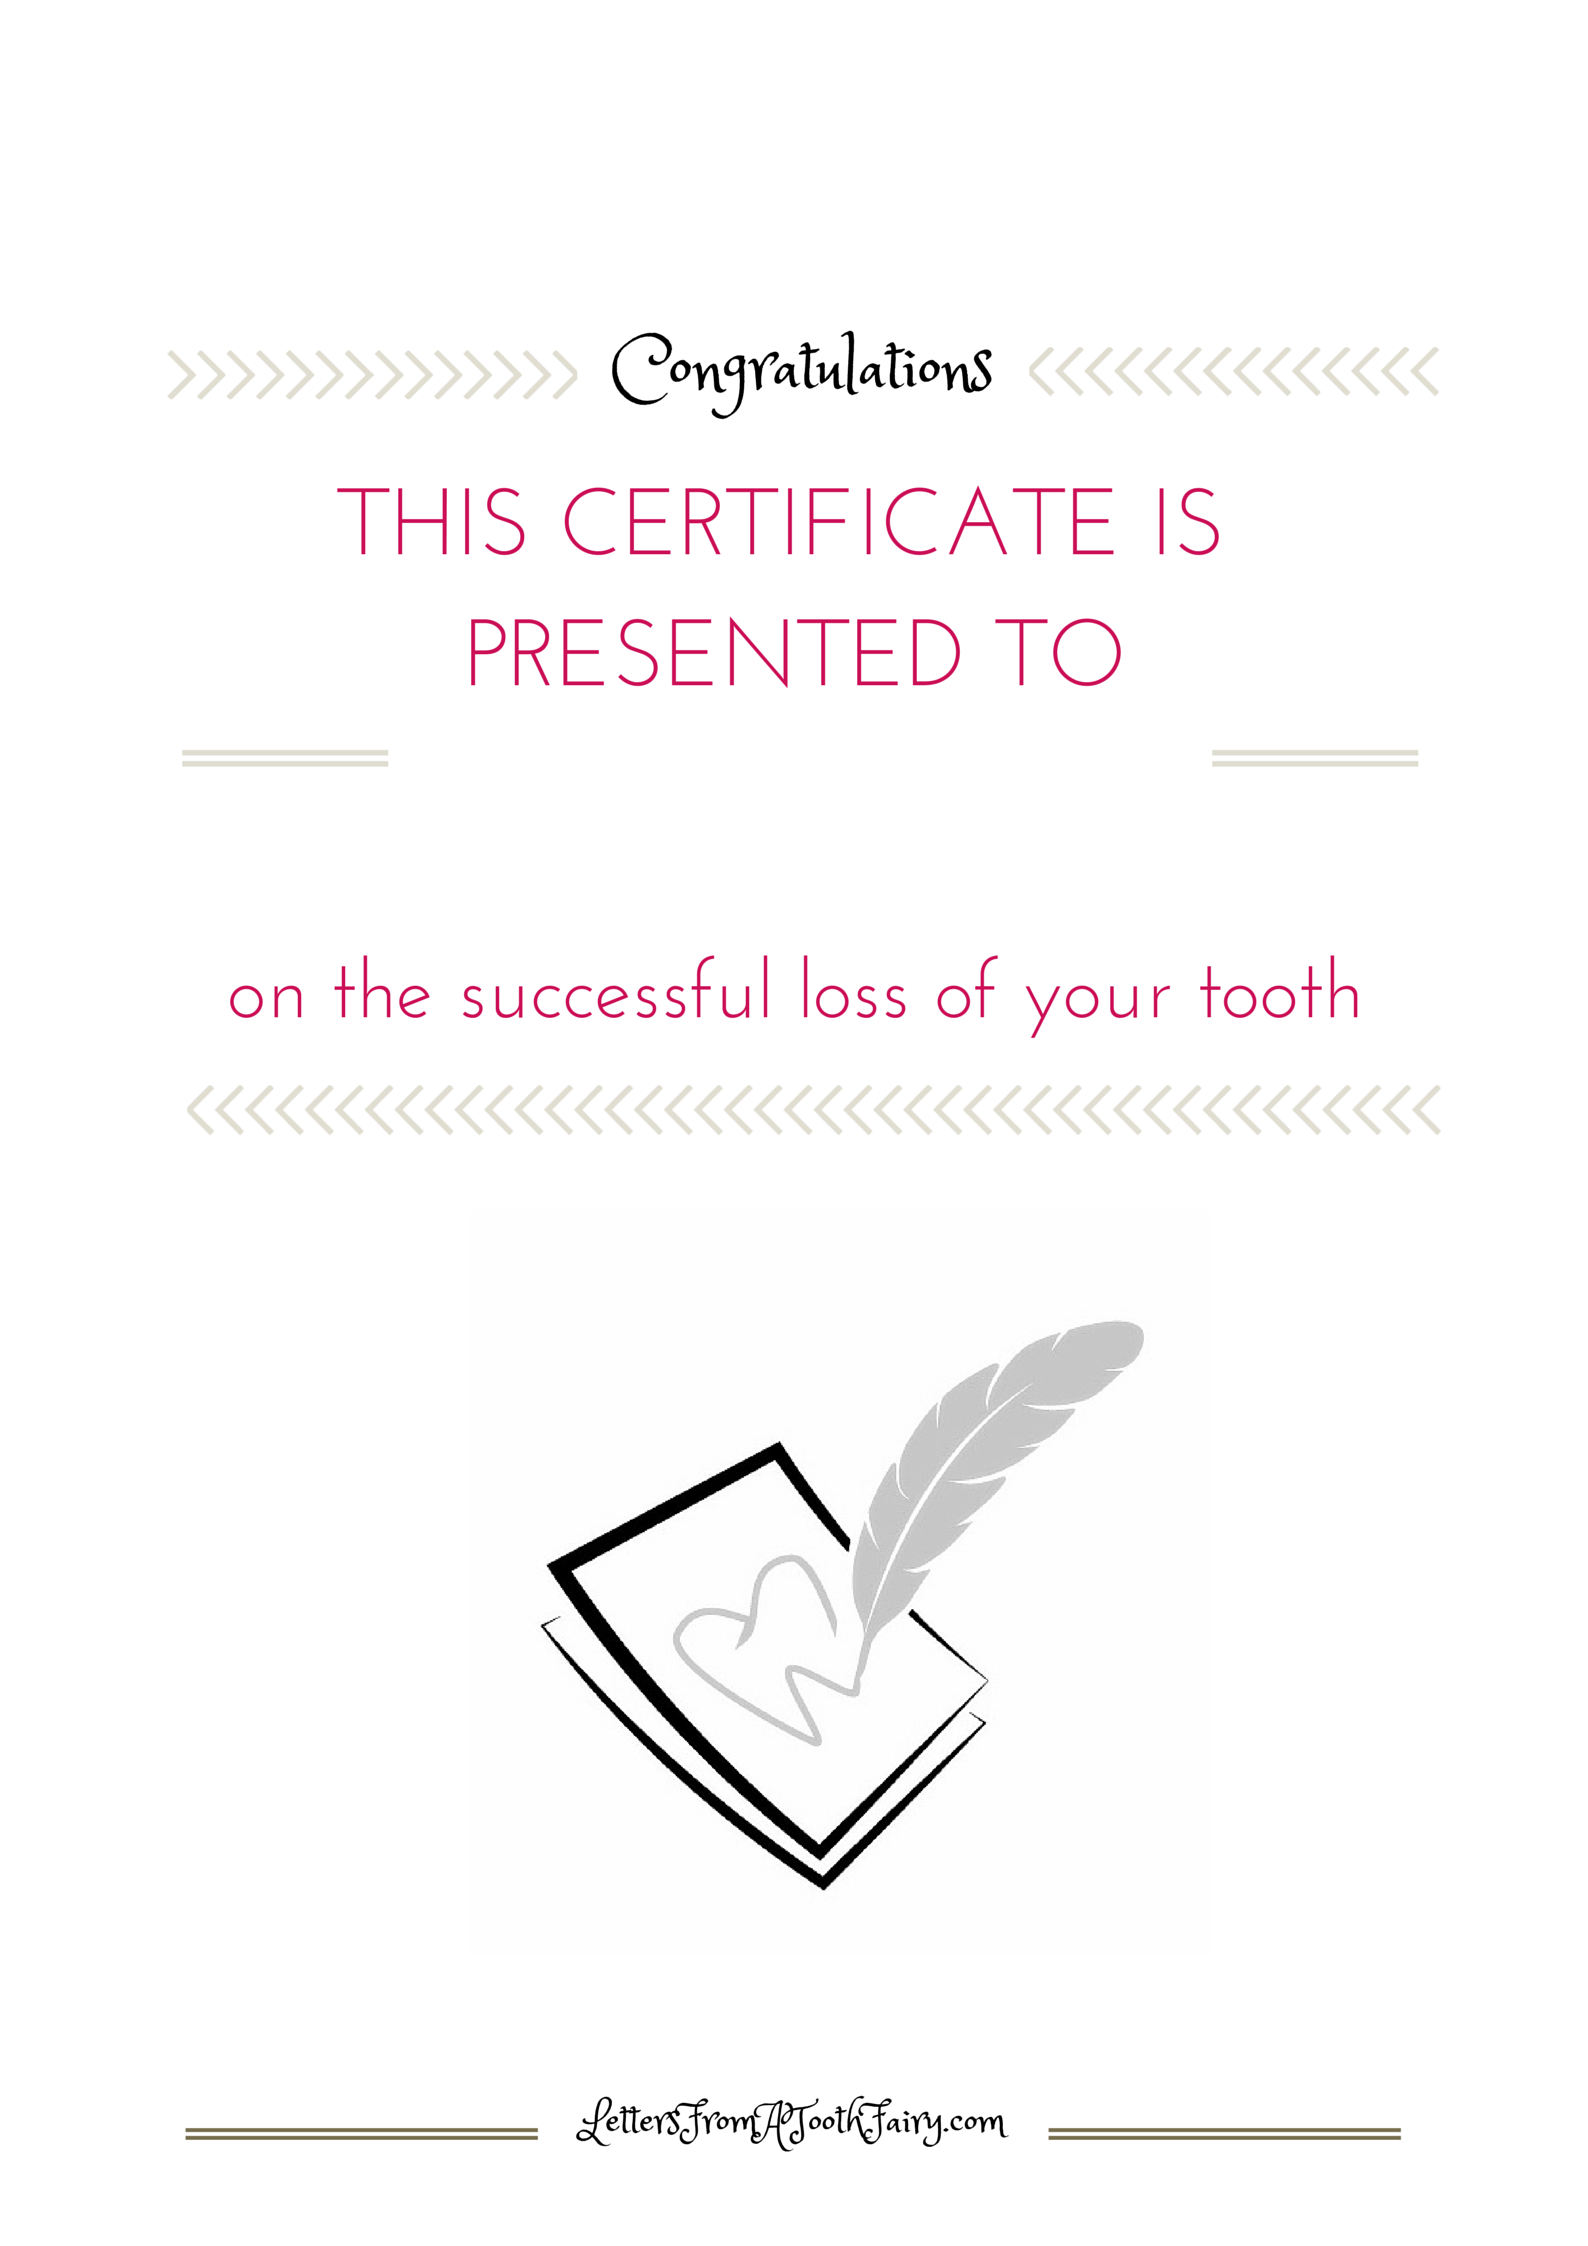 Free printable tooth fairy certificate from the tooth fairies of the Tooth Fairy Company.  lettersfromatoothfairy.com/tooth-fairy-certificate